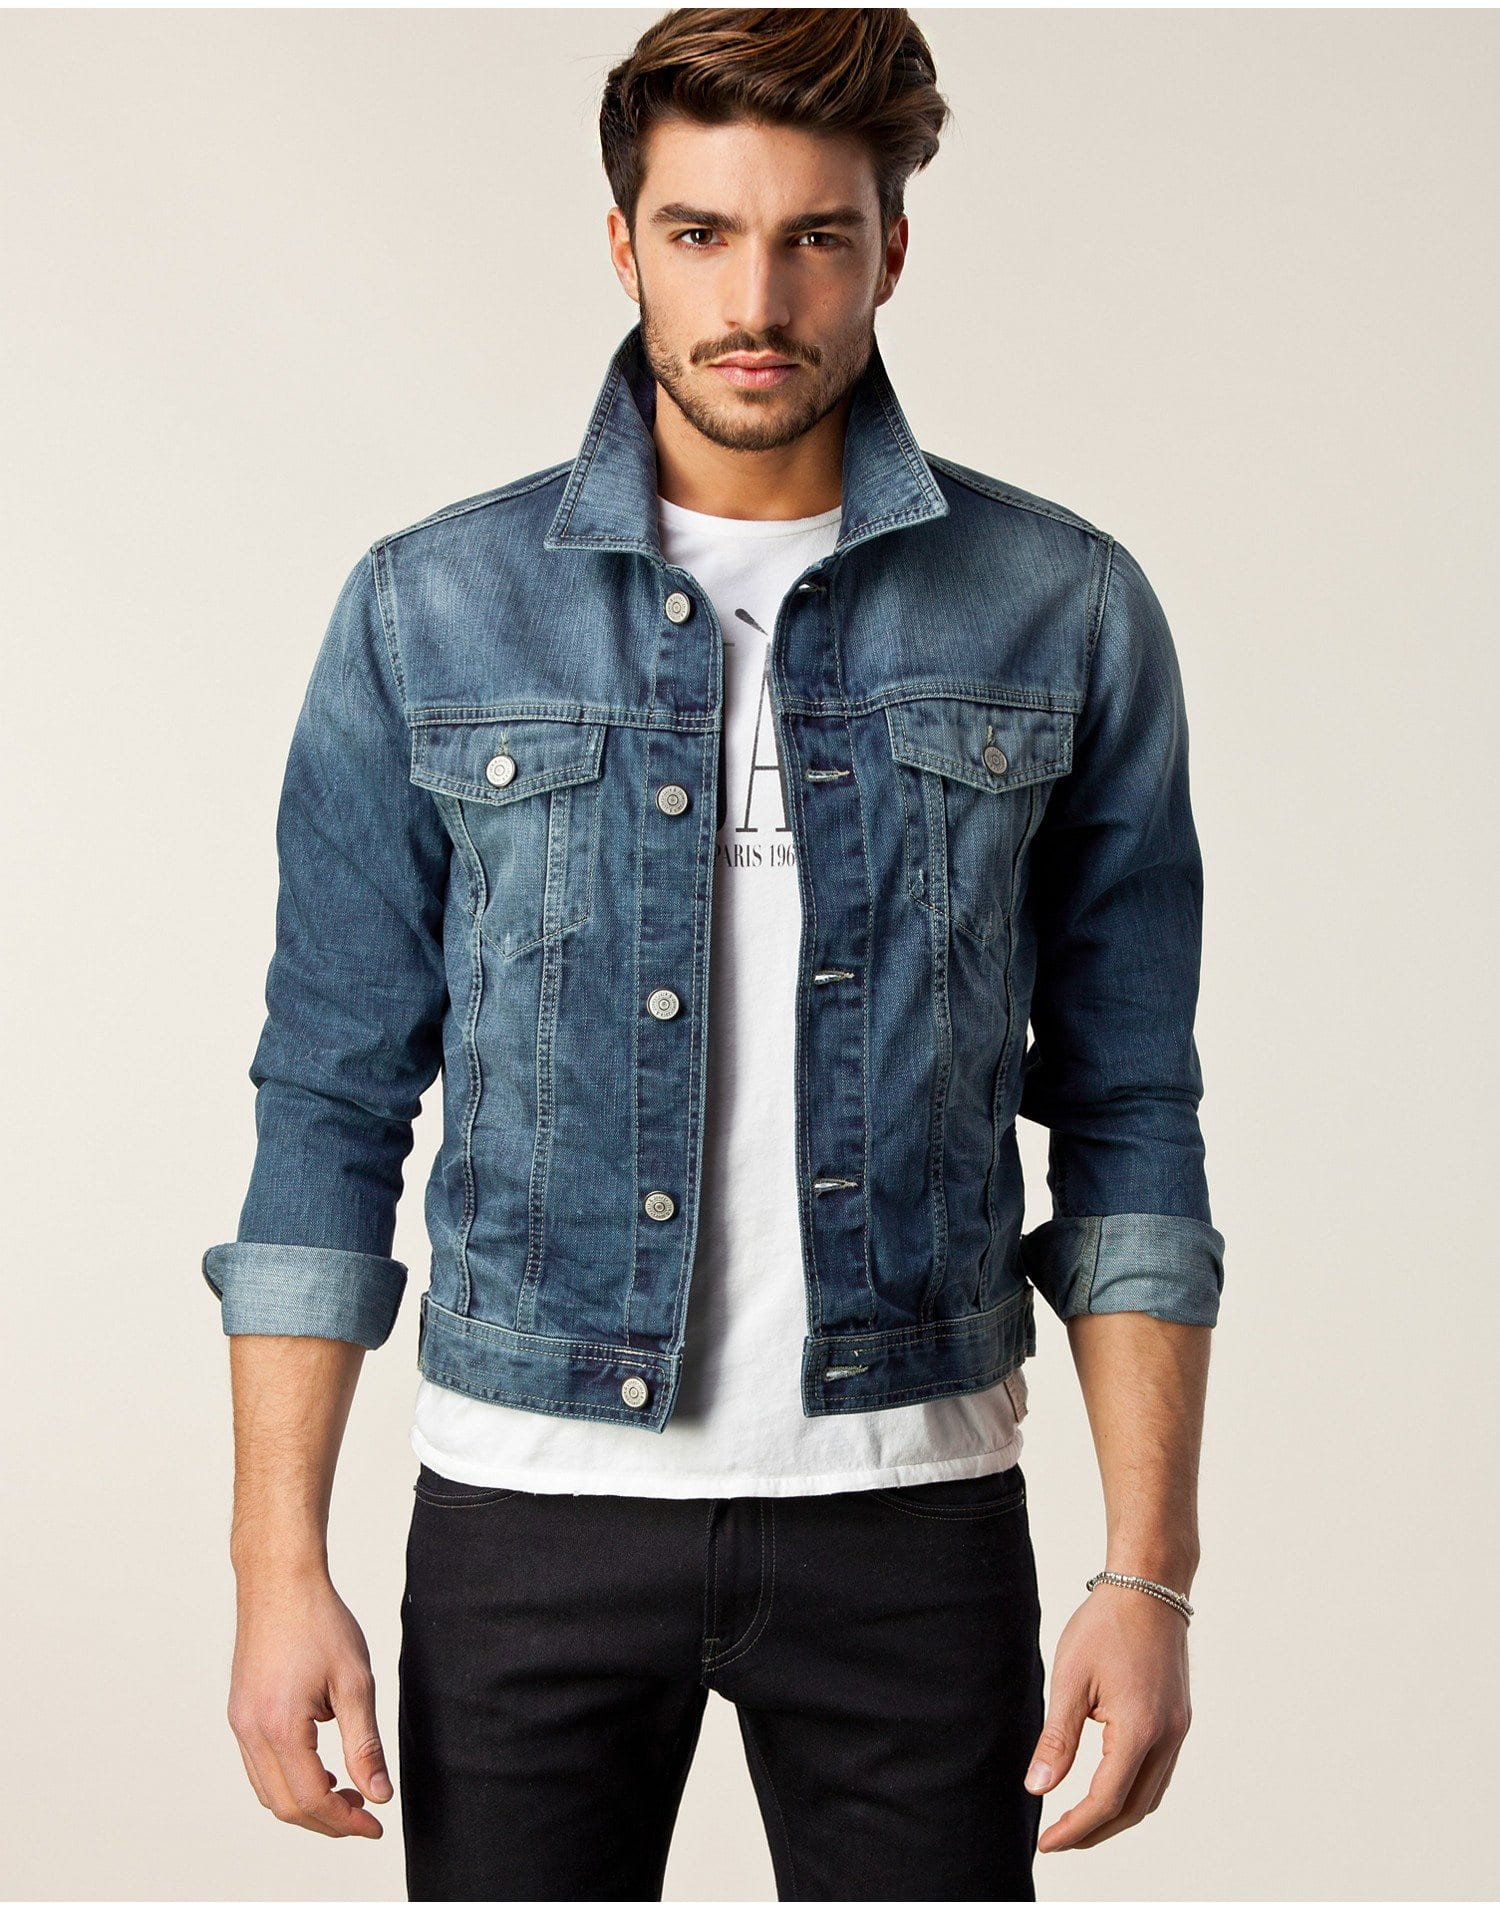 Find great deals on eBay for black jean jacket. Shop with confidence.